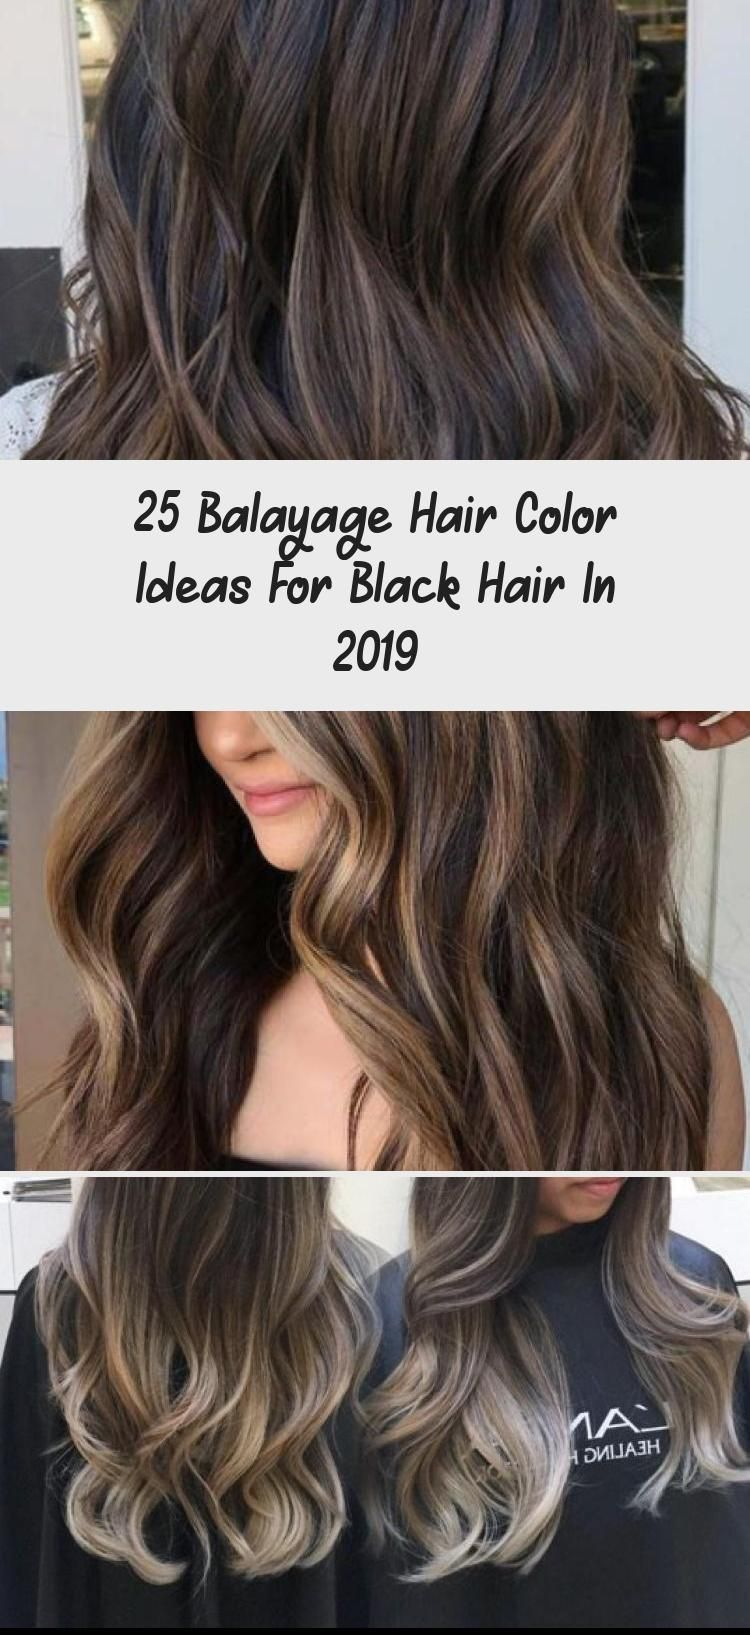 9 Balayage Hair Color Ideas for Black Hair in 9, Balayage is a ...